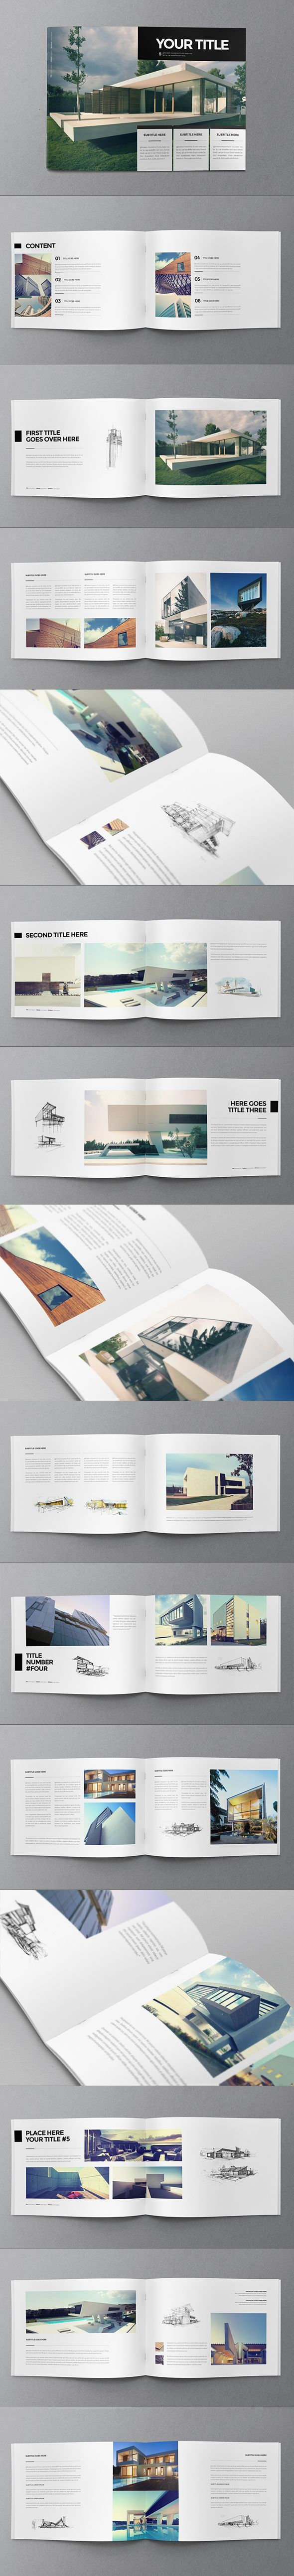 Minimal Architecture Brochure  Layouts Architecture Portfolio